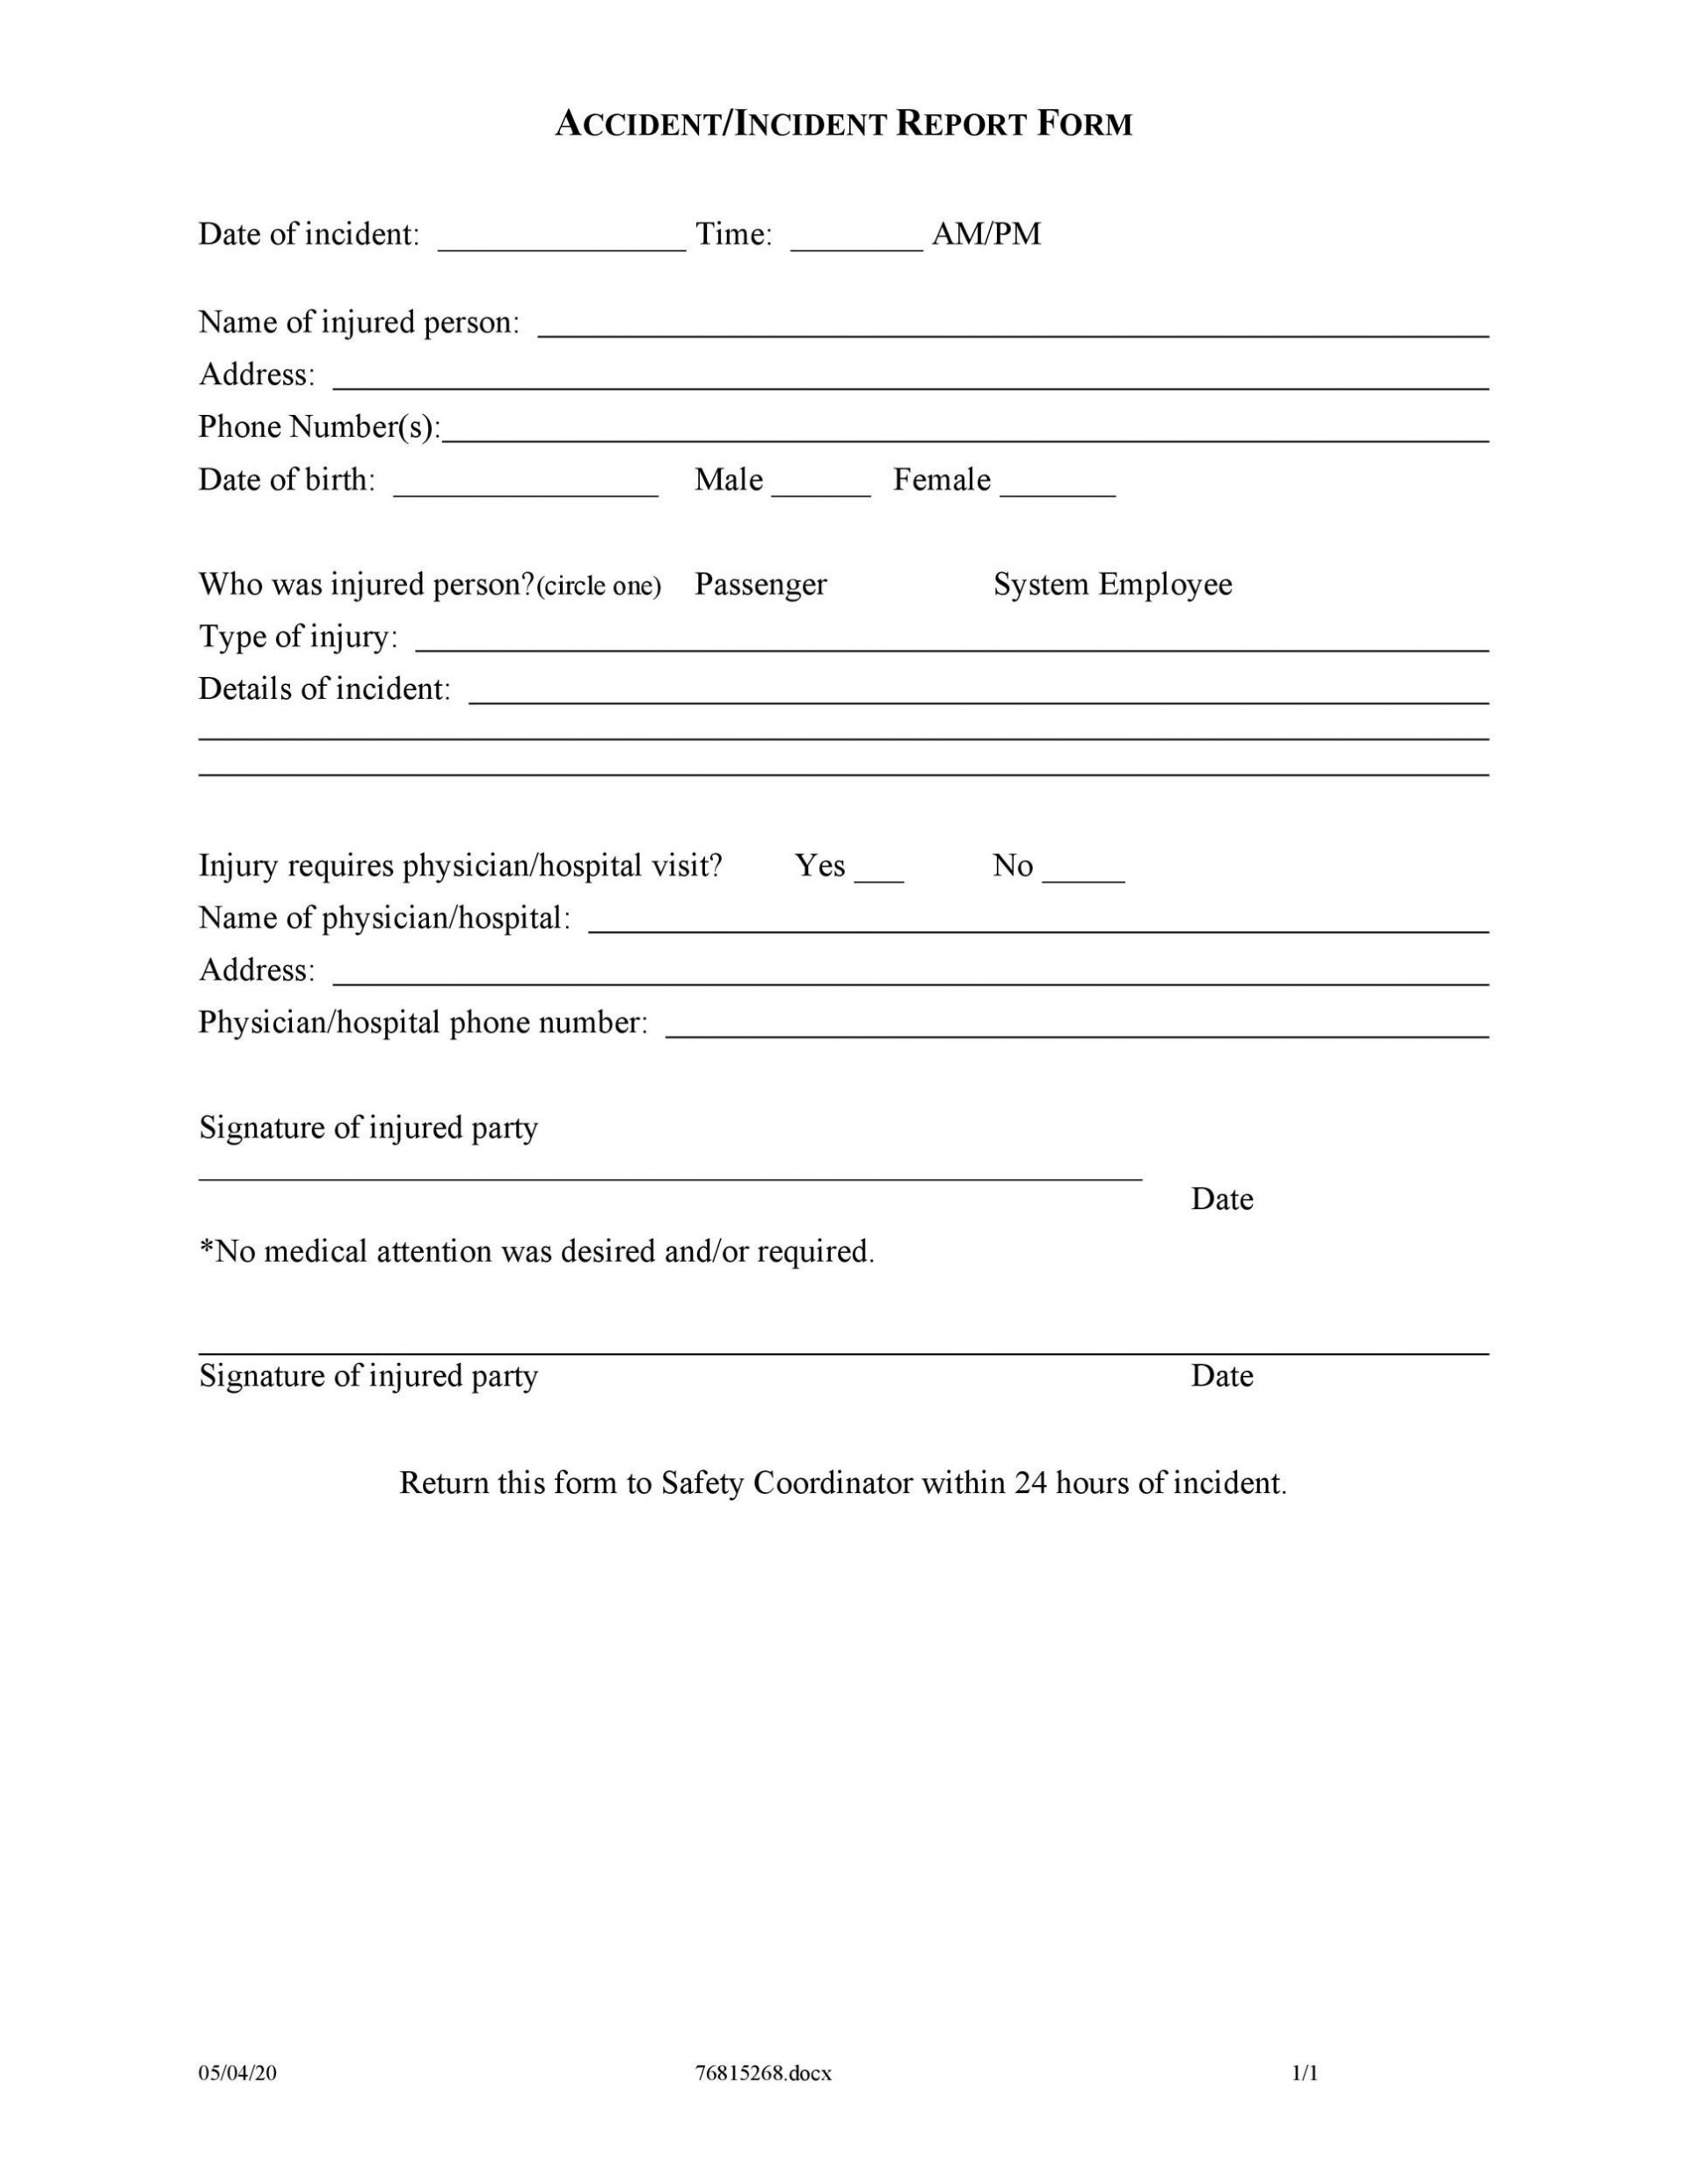 005 Awesome Accident Report Form Template Highest Clarity  Free South Africa Pdf1920